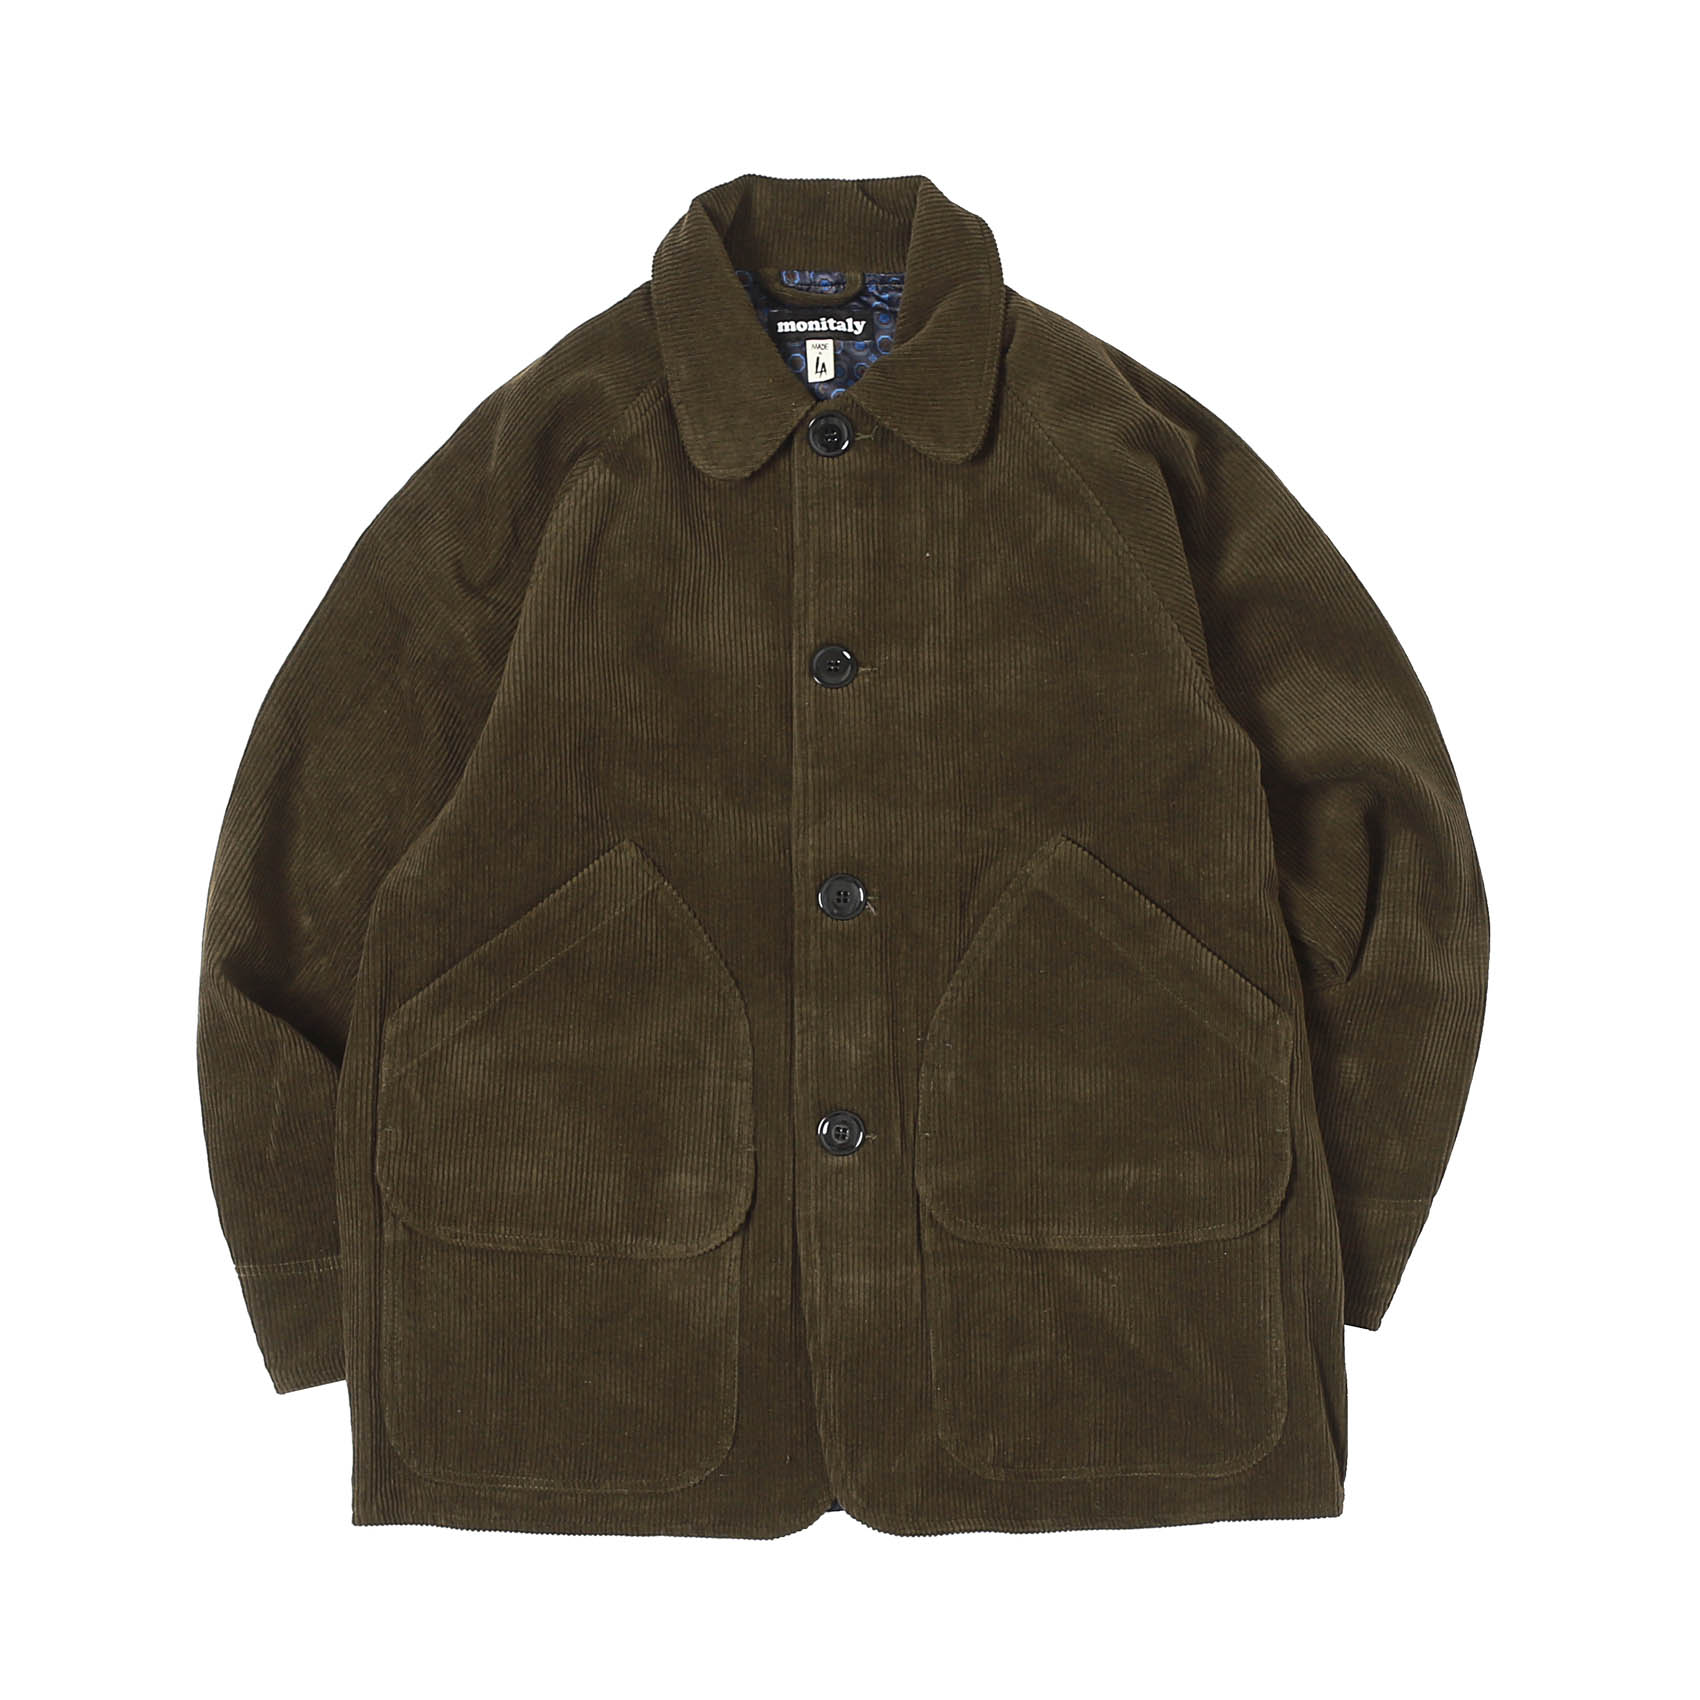 CORDUROY FARMER'S JACKET - BROWN